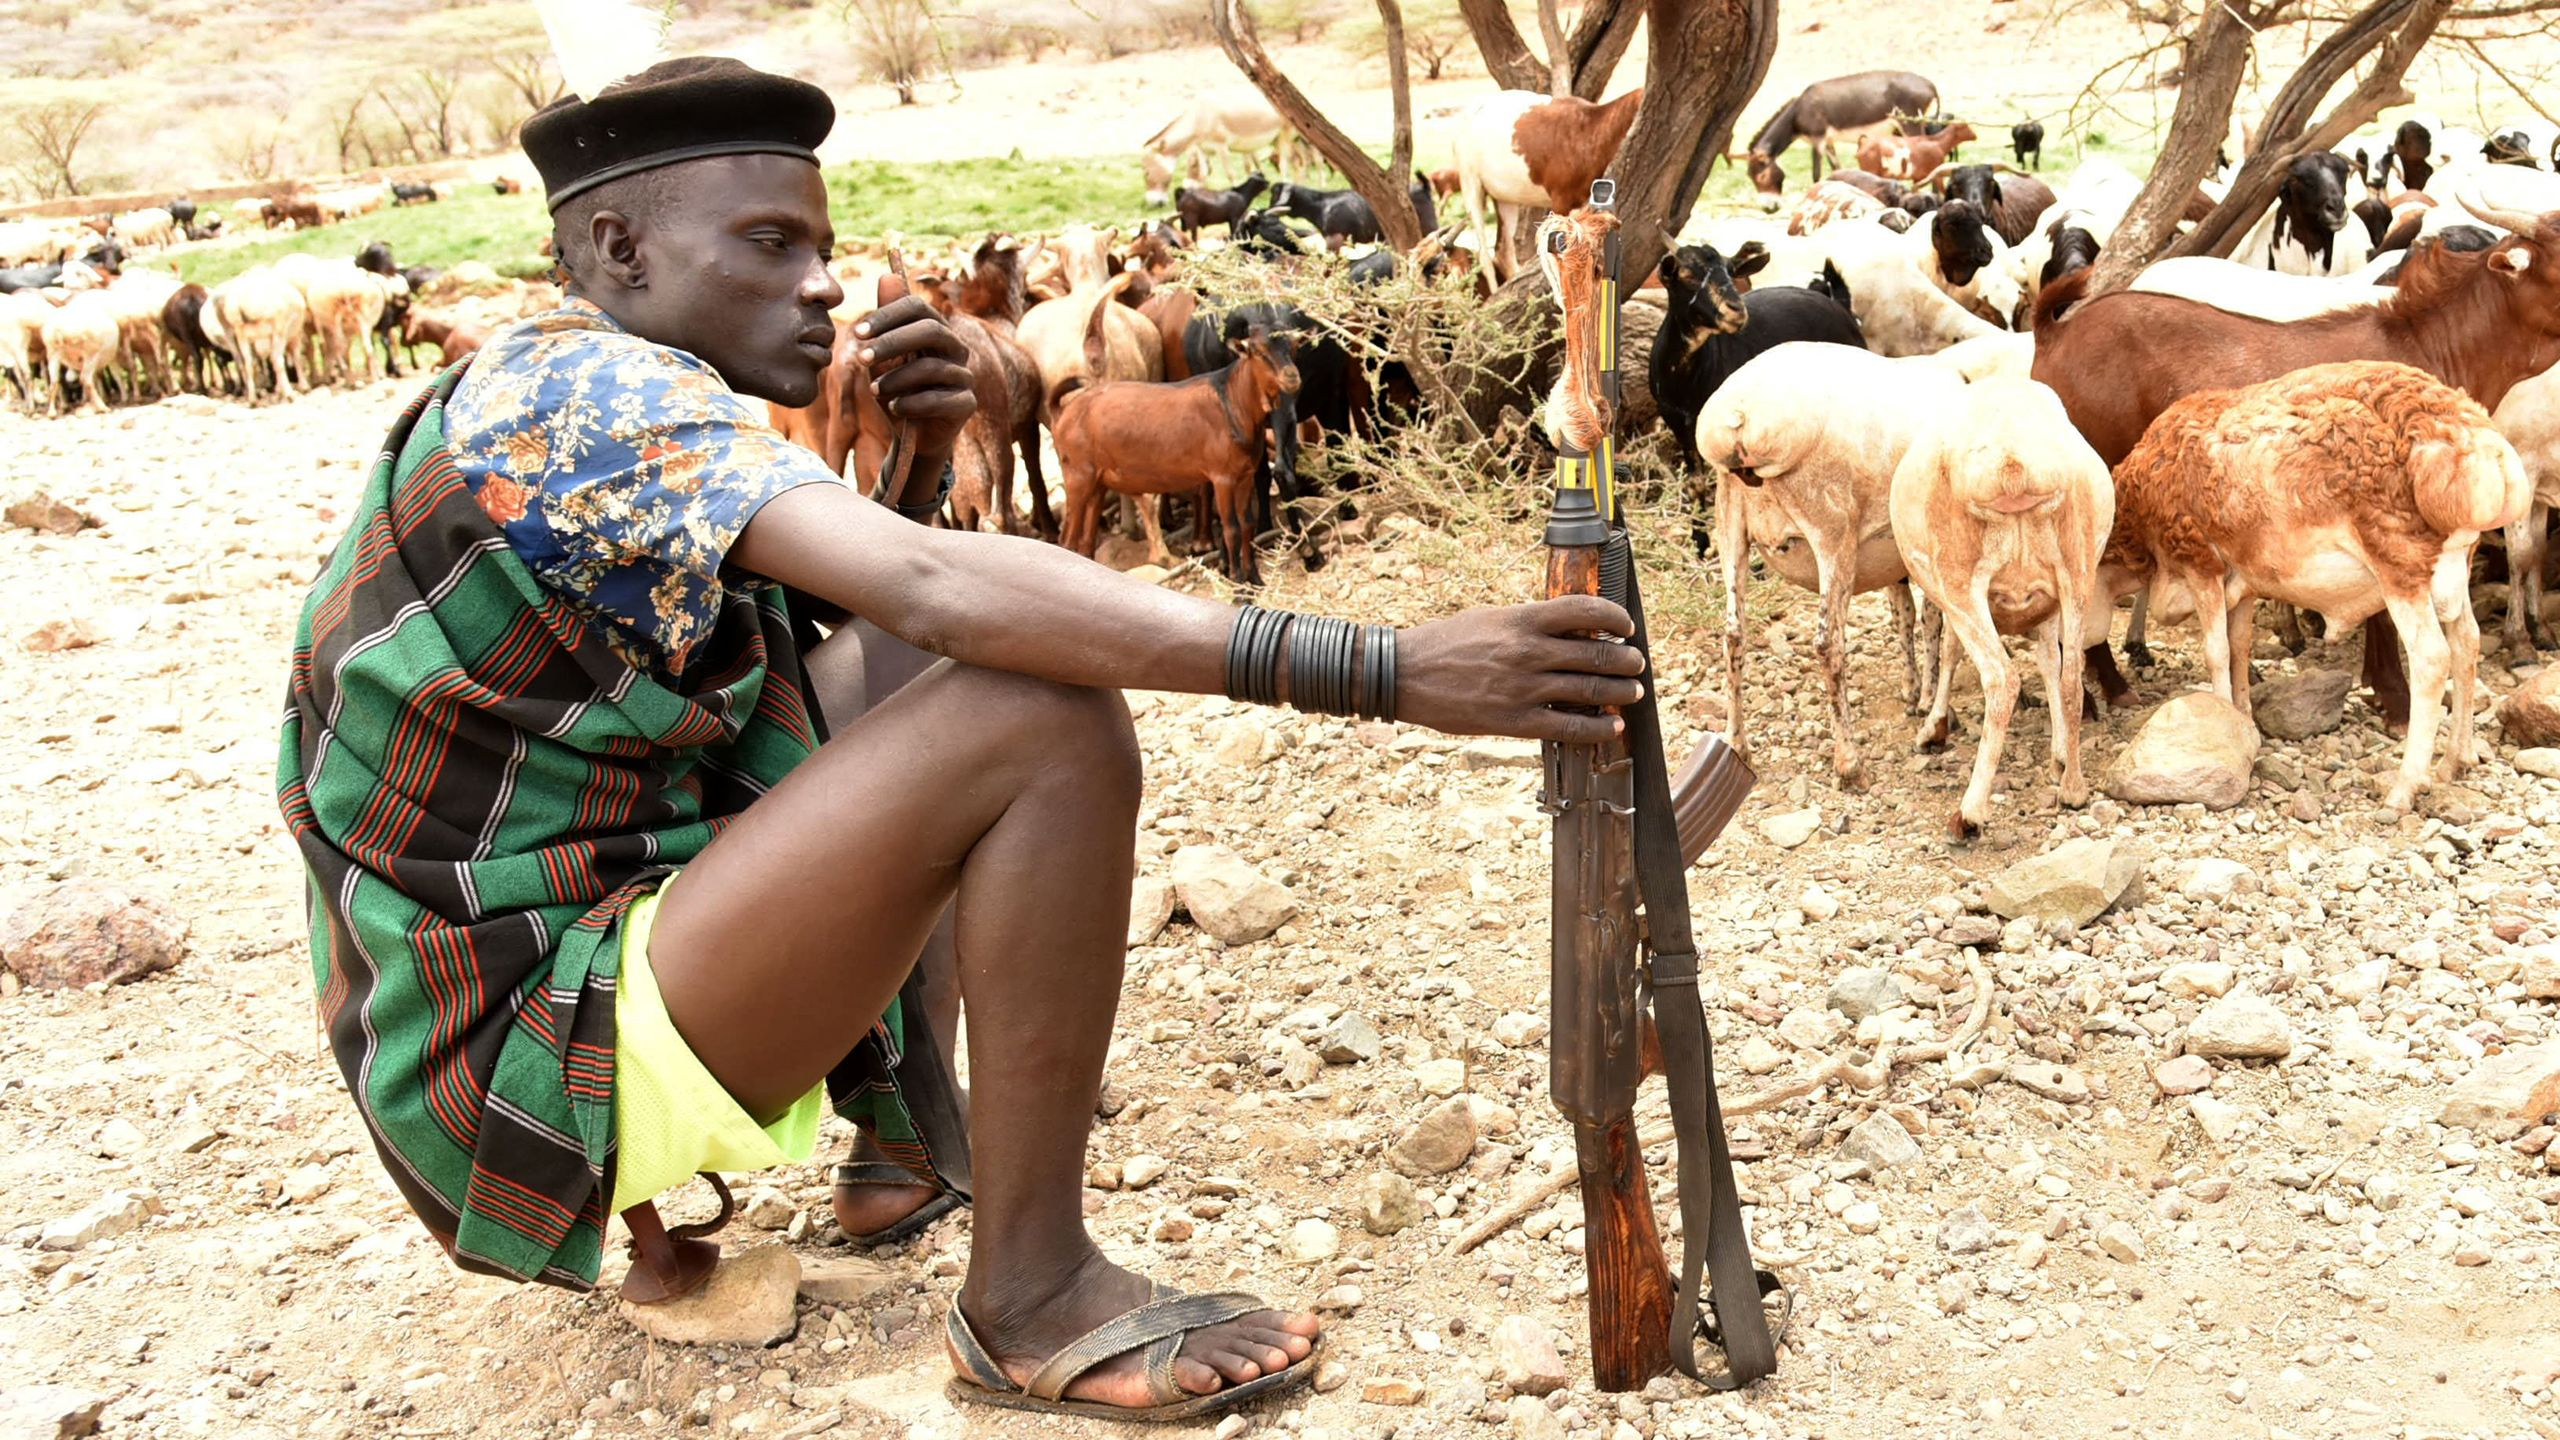 A man in a black beret sits on some type of tool, a gan on his extended right hand, sheep behind him.